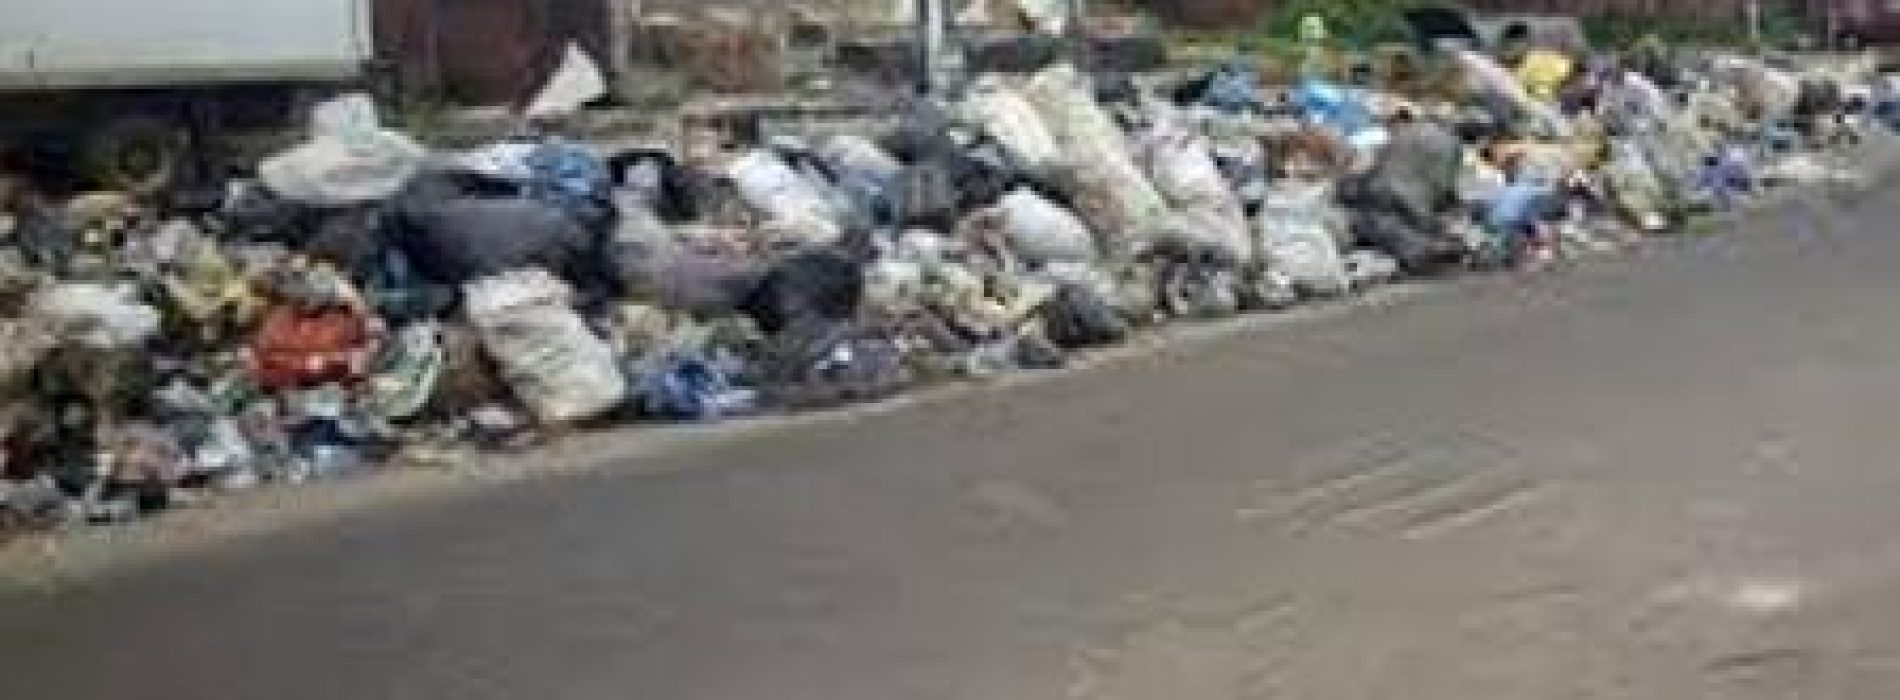 Refuse dumps take over Lagos